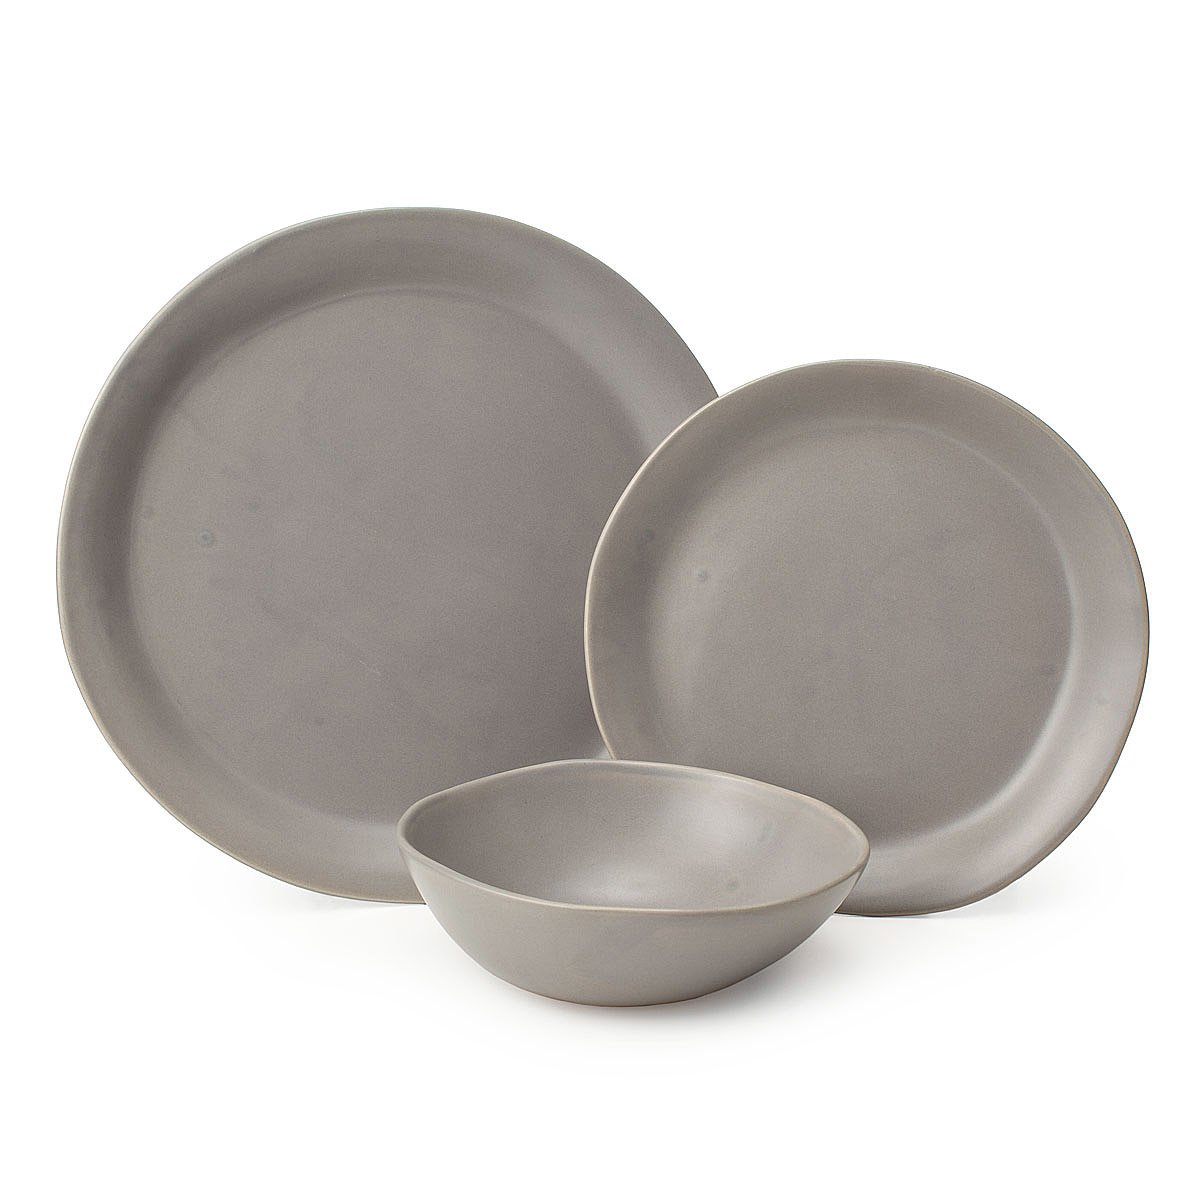 gray stoneware dishware collection 1 thumbnail - Stoneware Dishes